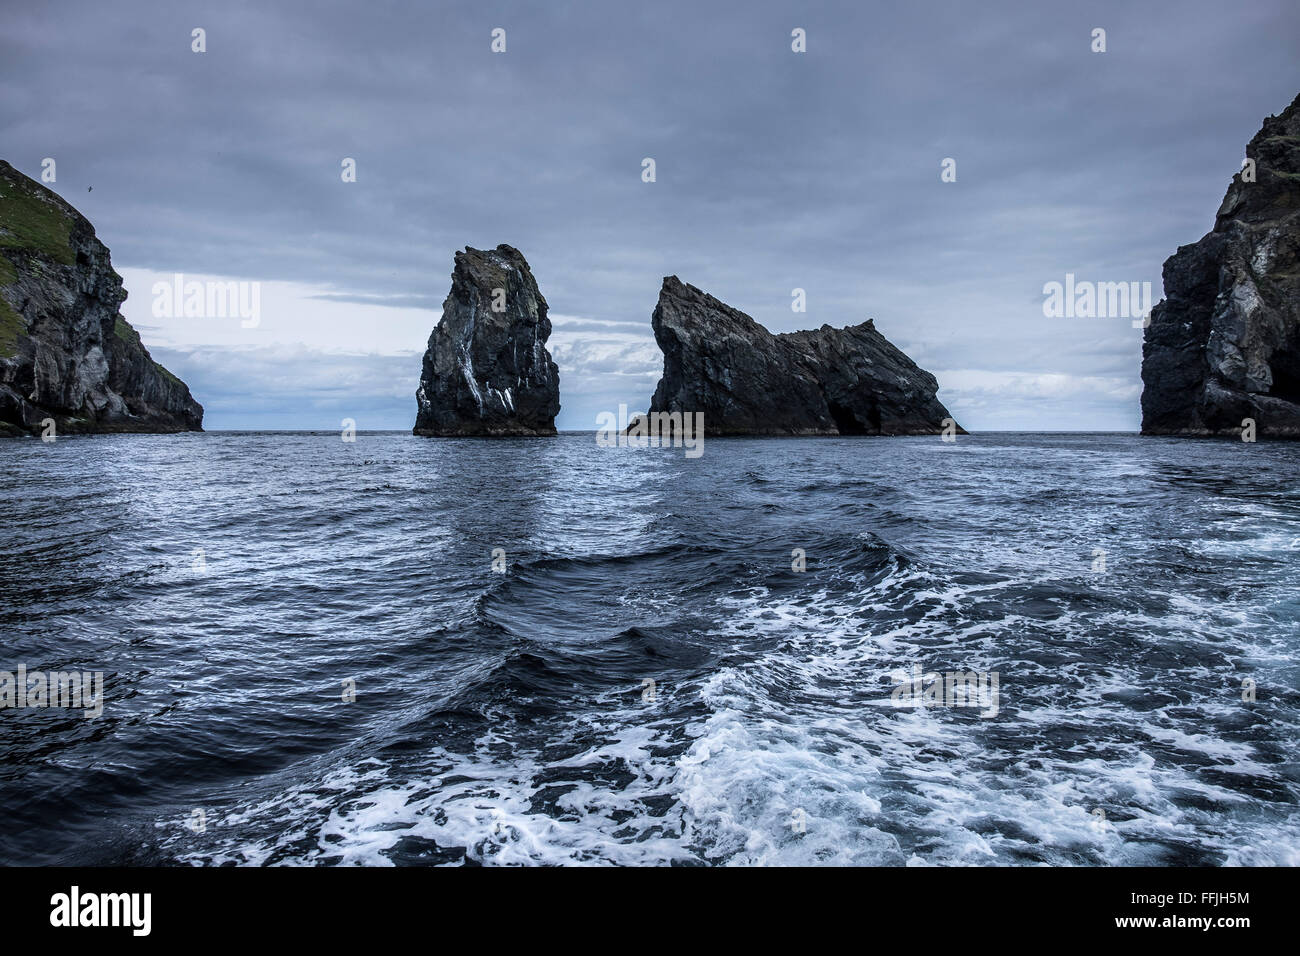 wake of motor boat with rocky outcrop in moody blue sea at st kilda - Stock Image